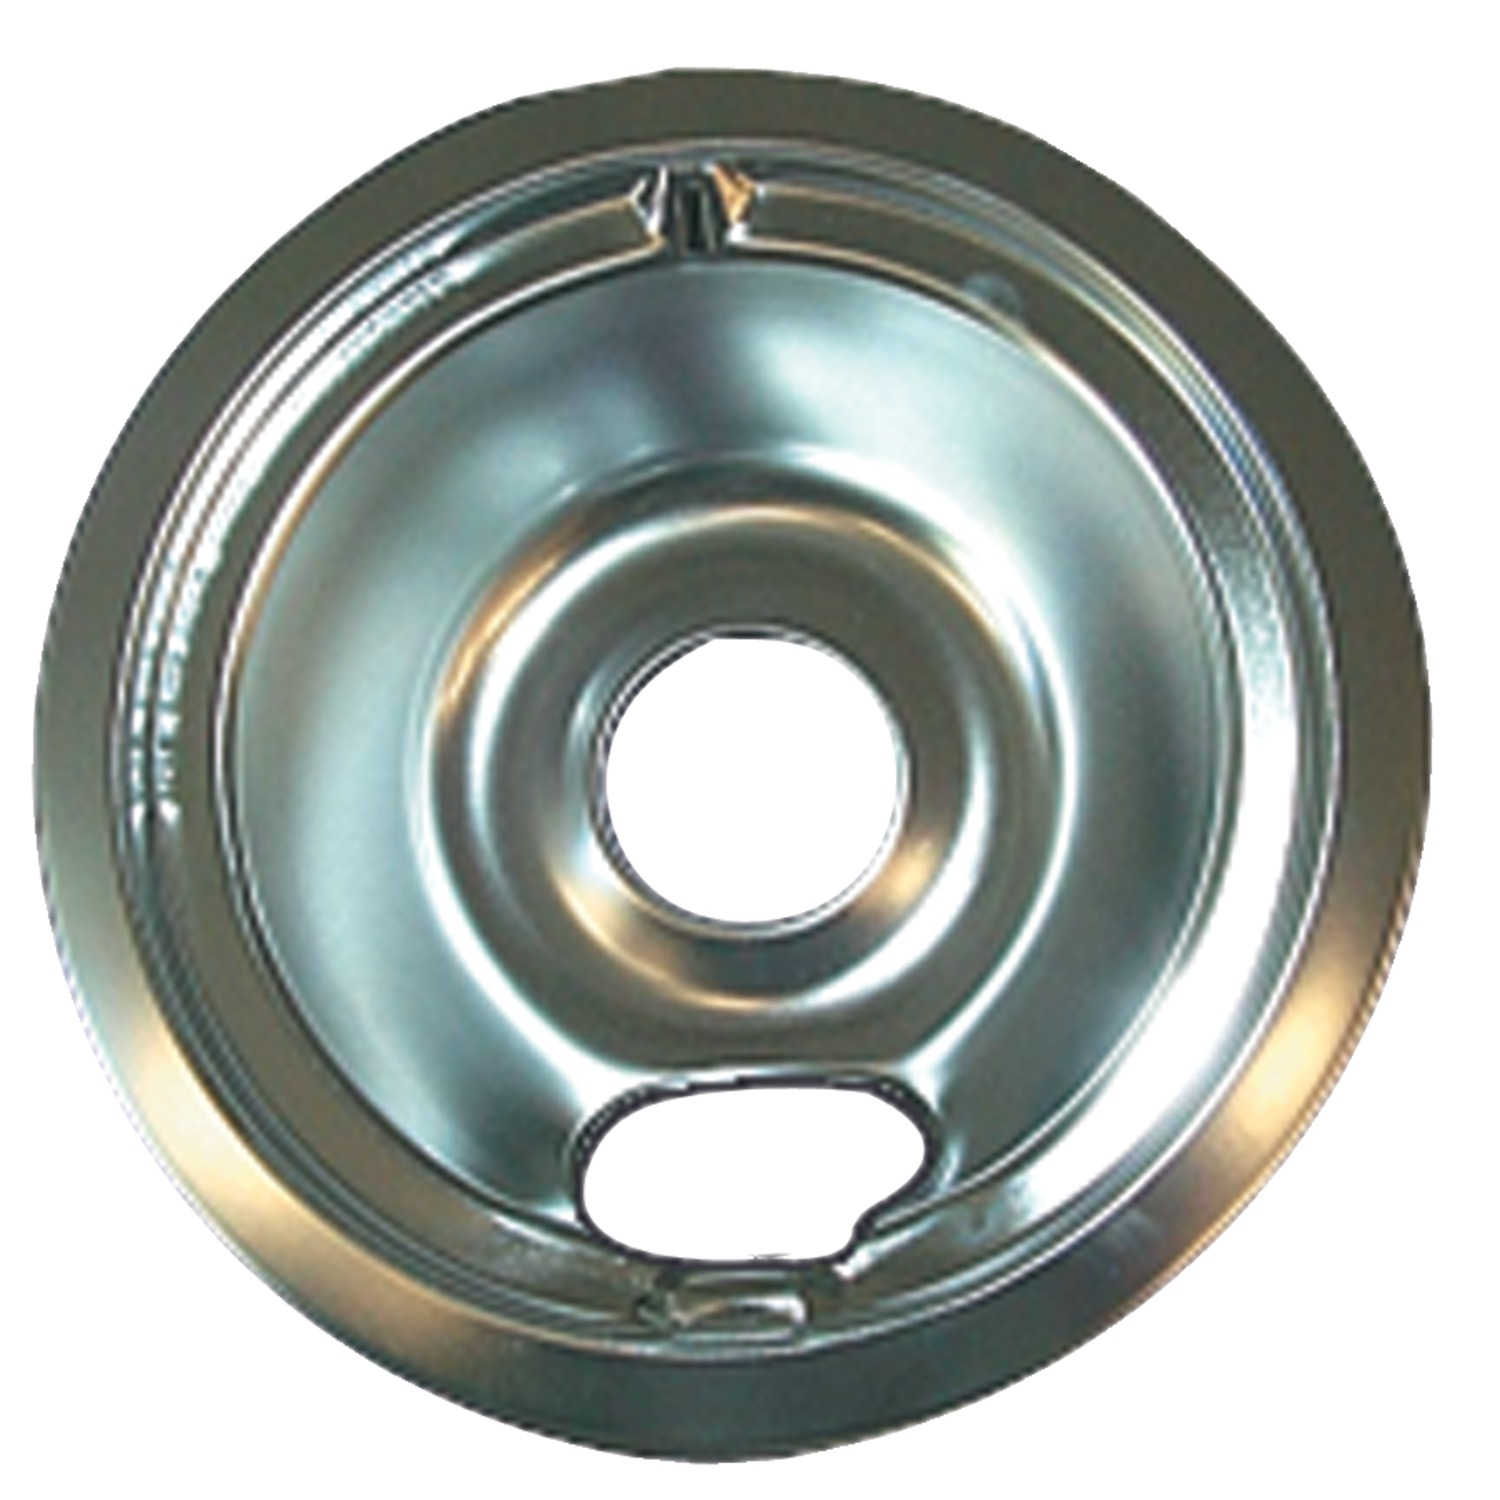 "Range Kleen 119-A Chrome Drip Pan For GE/Hotpoint, Style B (6"")"